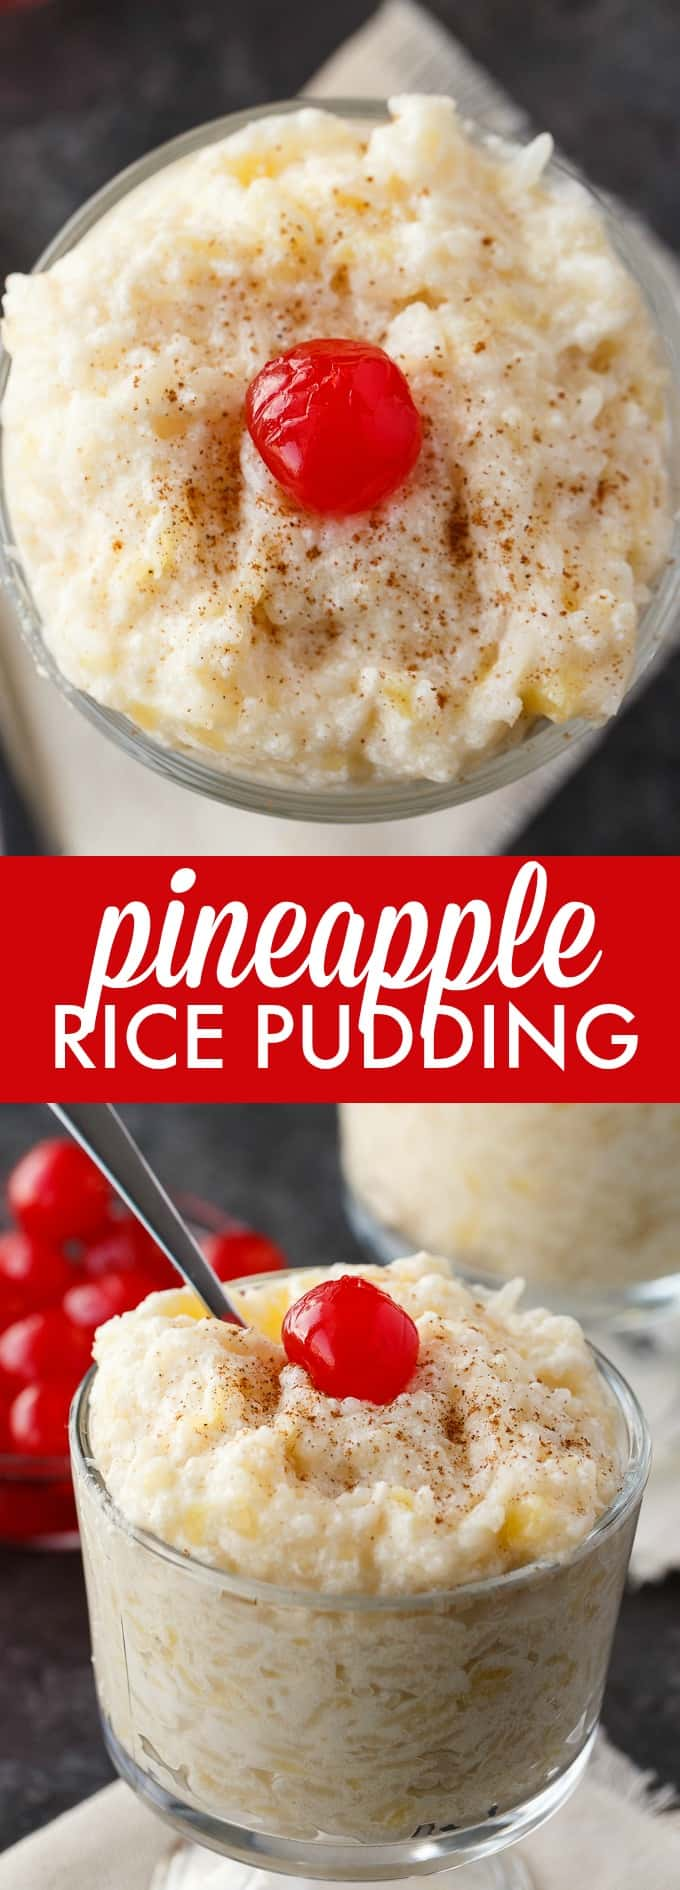 Pineapple Rice Pudding - Sweet and creamy with a hint of yummy pineapple flavor!